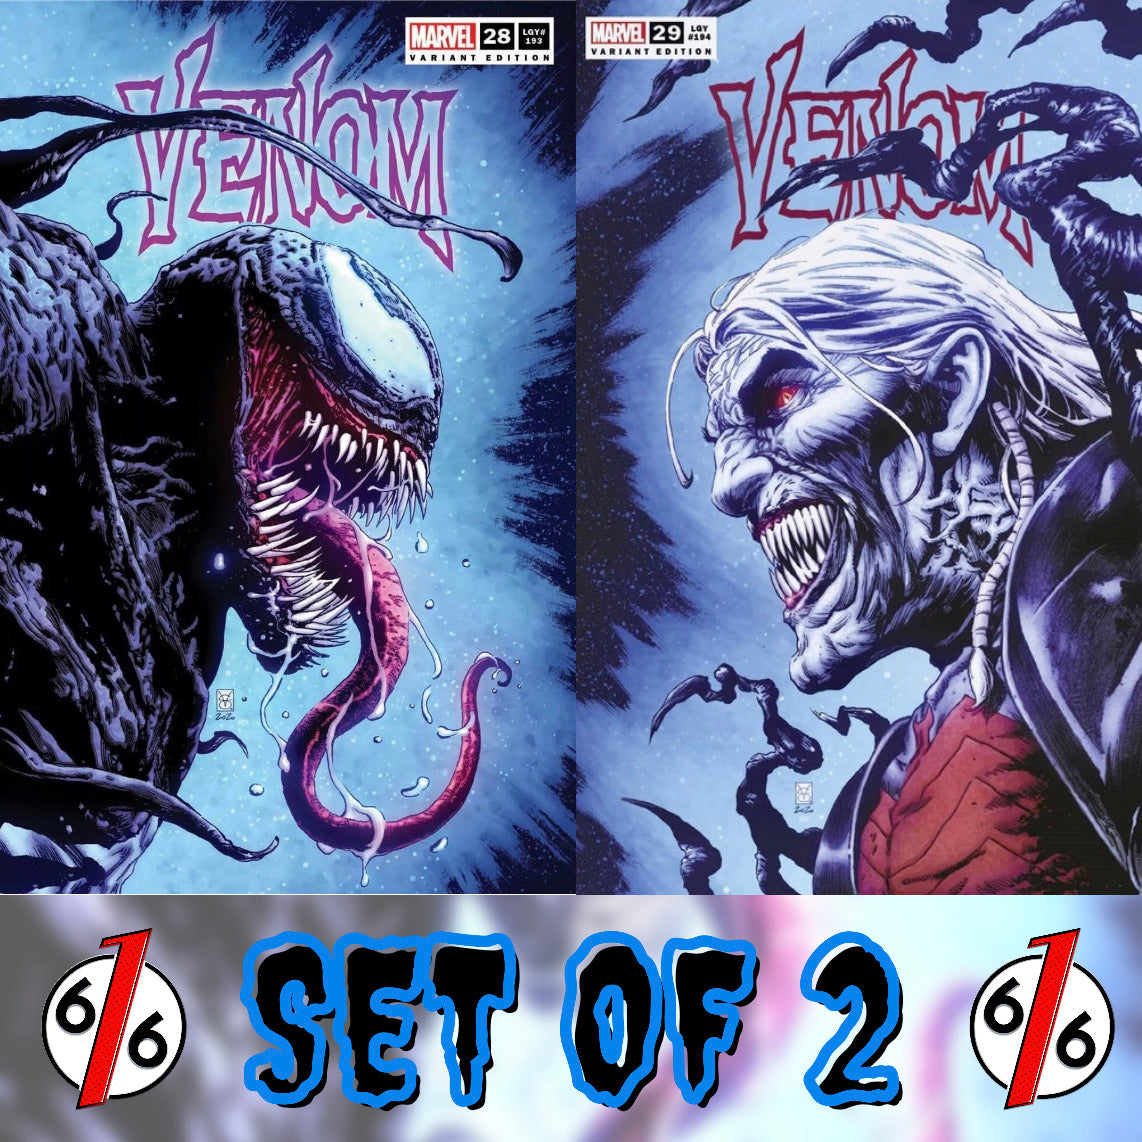 VENOM #28 & 29 VALERIO GIANGIORDANO SET OF 2 Trade Dress Variants